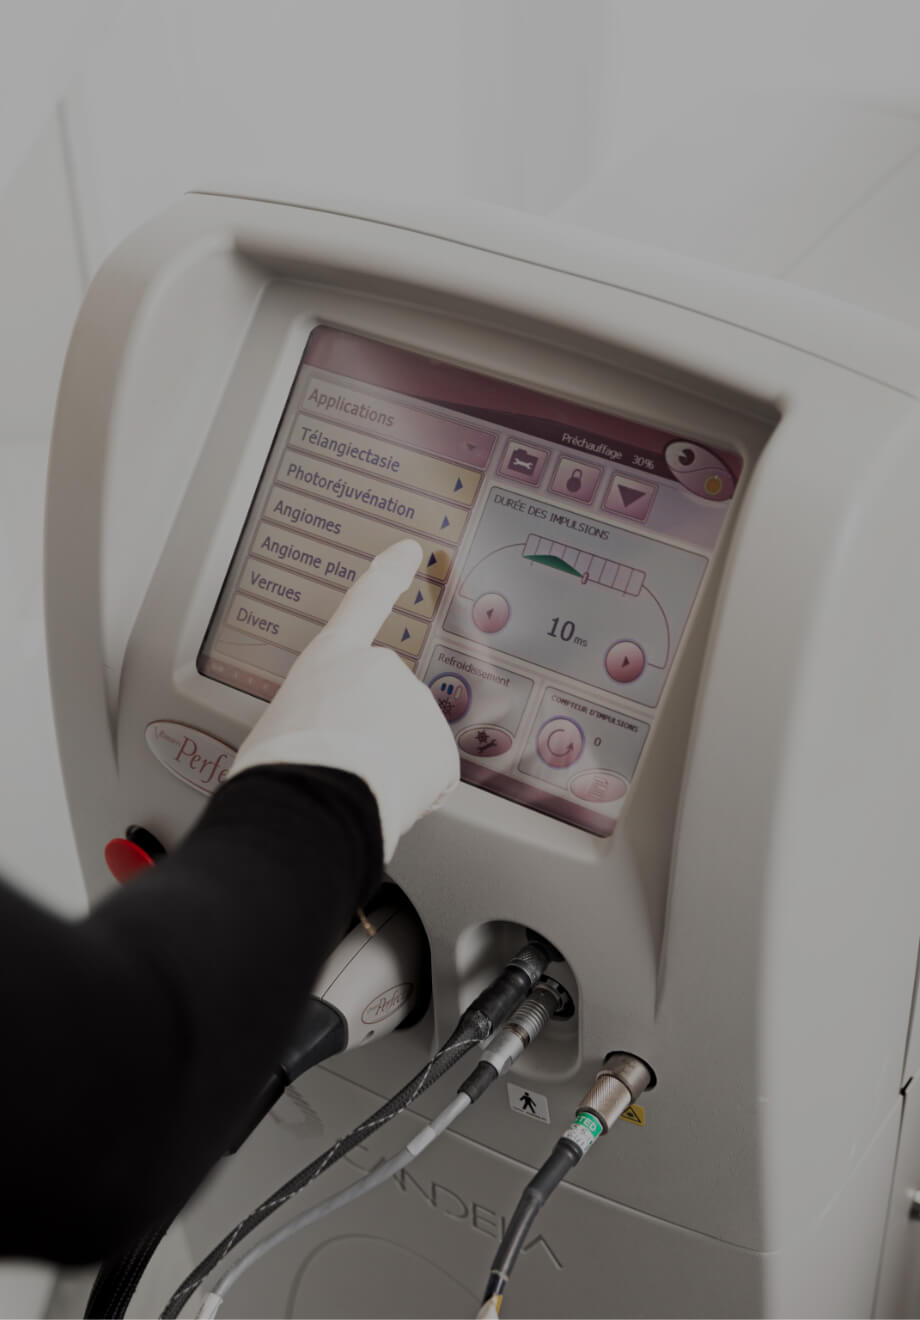 A medico-aesthetic technician from Clinique Chloé adjusting parameters on the Vbeam laser screen with her finger